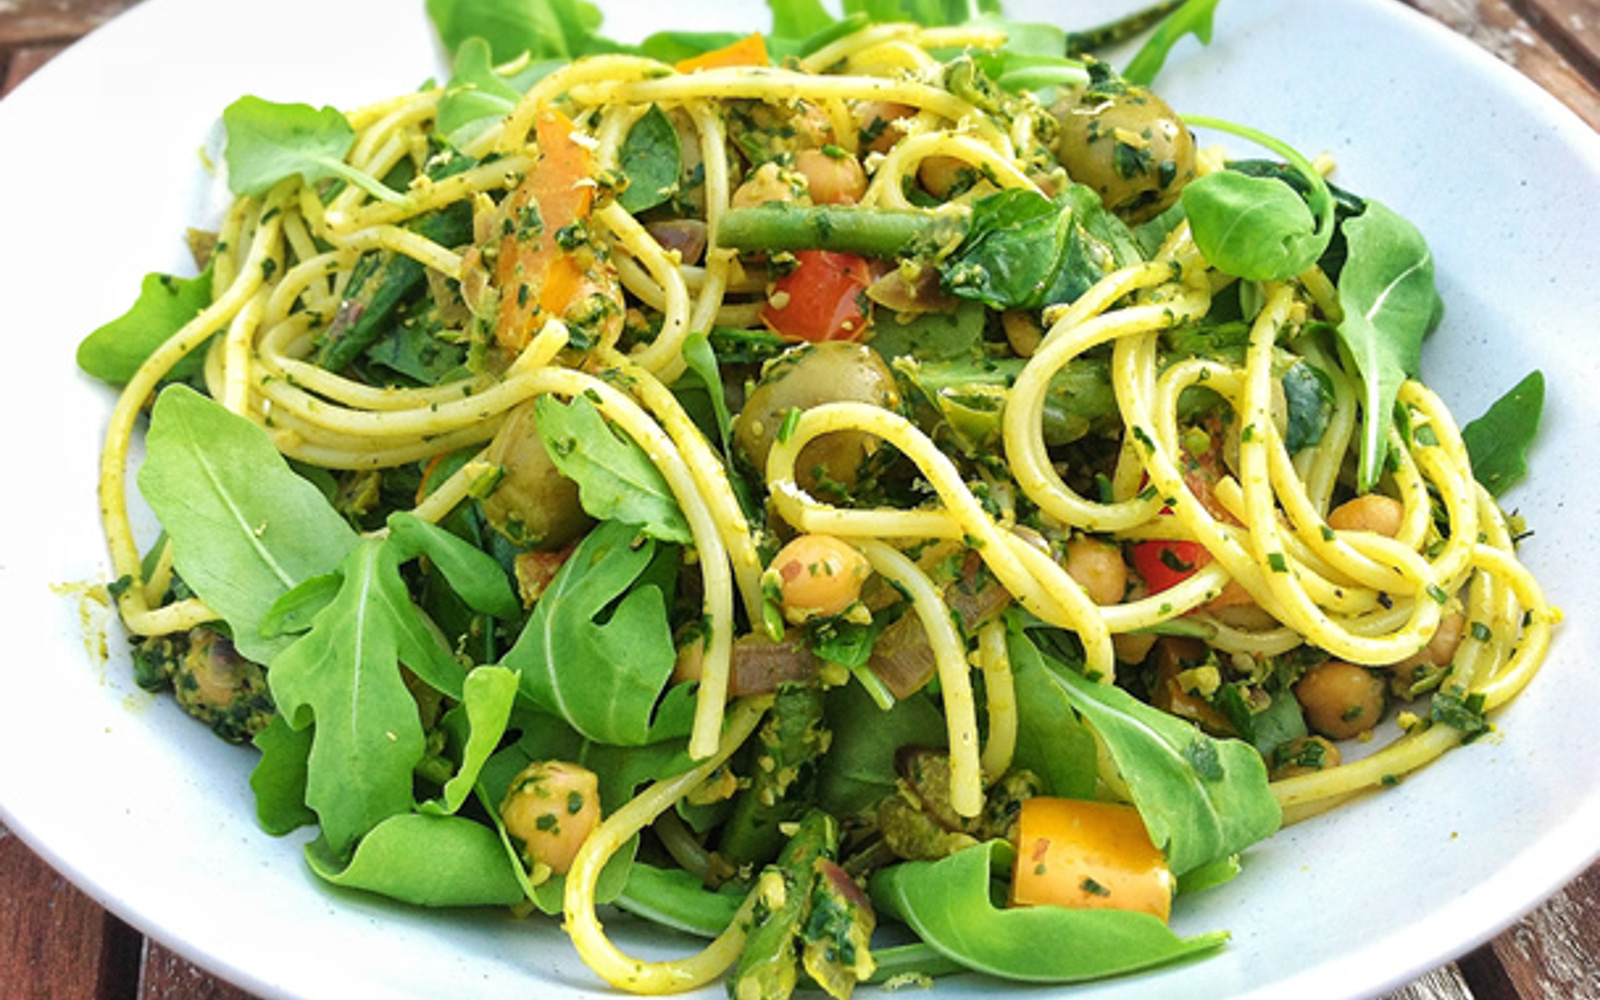 Vegan Spaghetti Moroccan Style With Spinach and Walnut Pesto